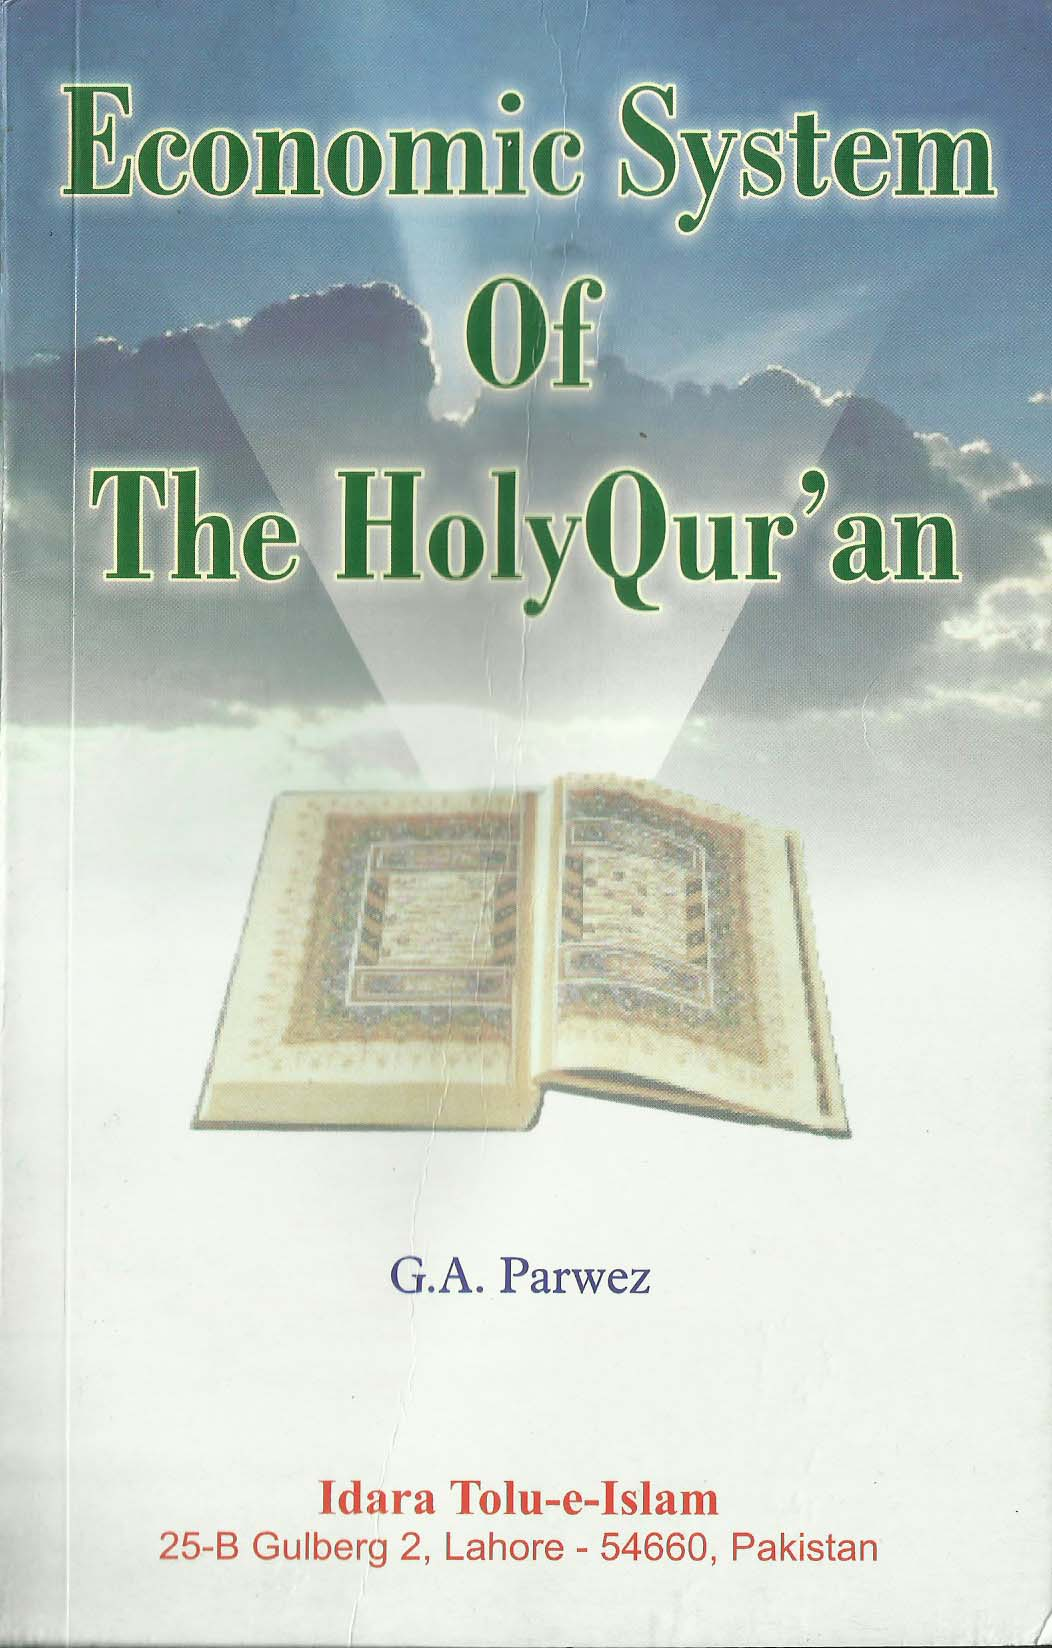 Economic-system-of-the-holy-quran